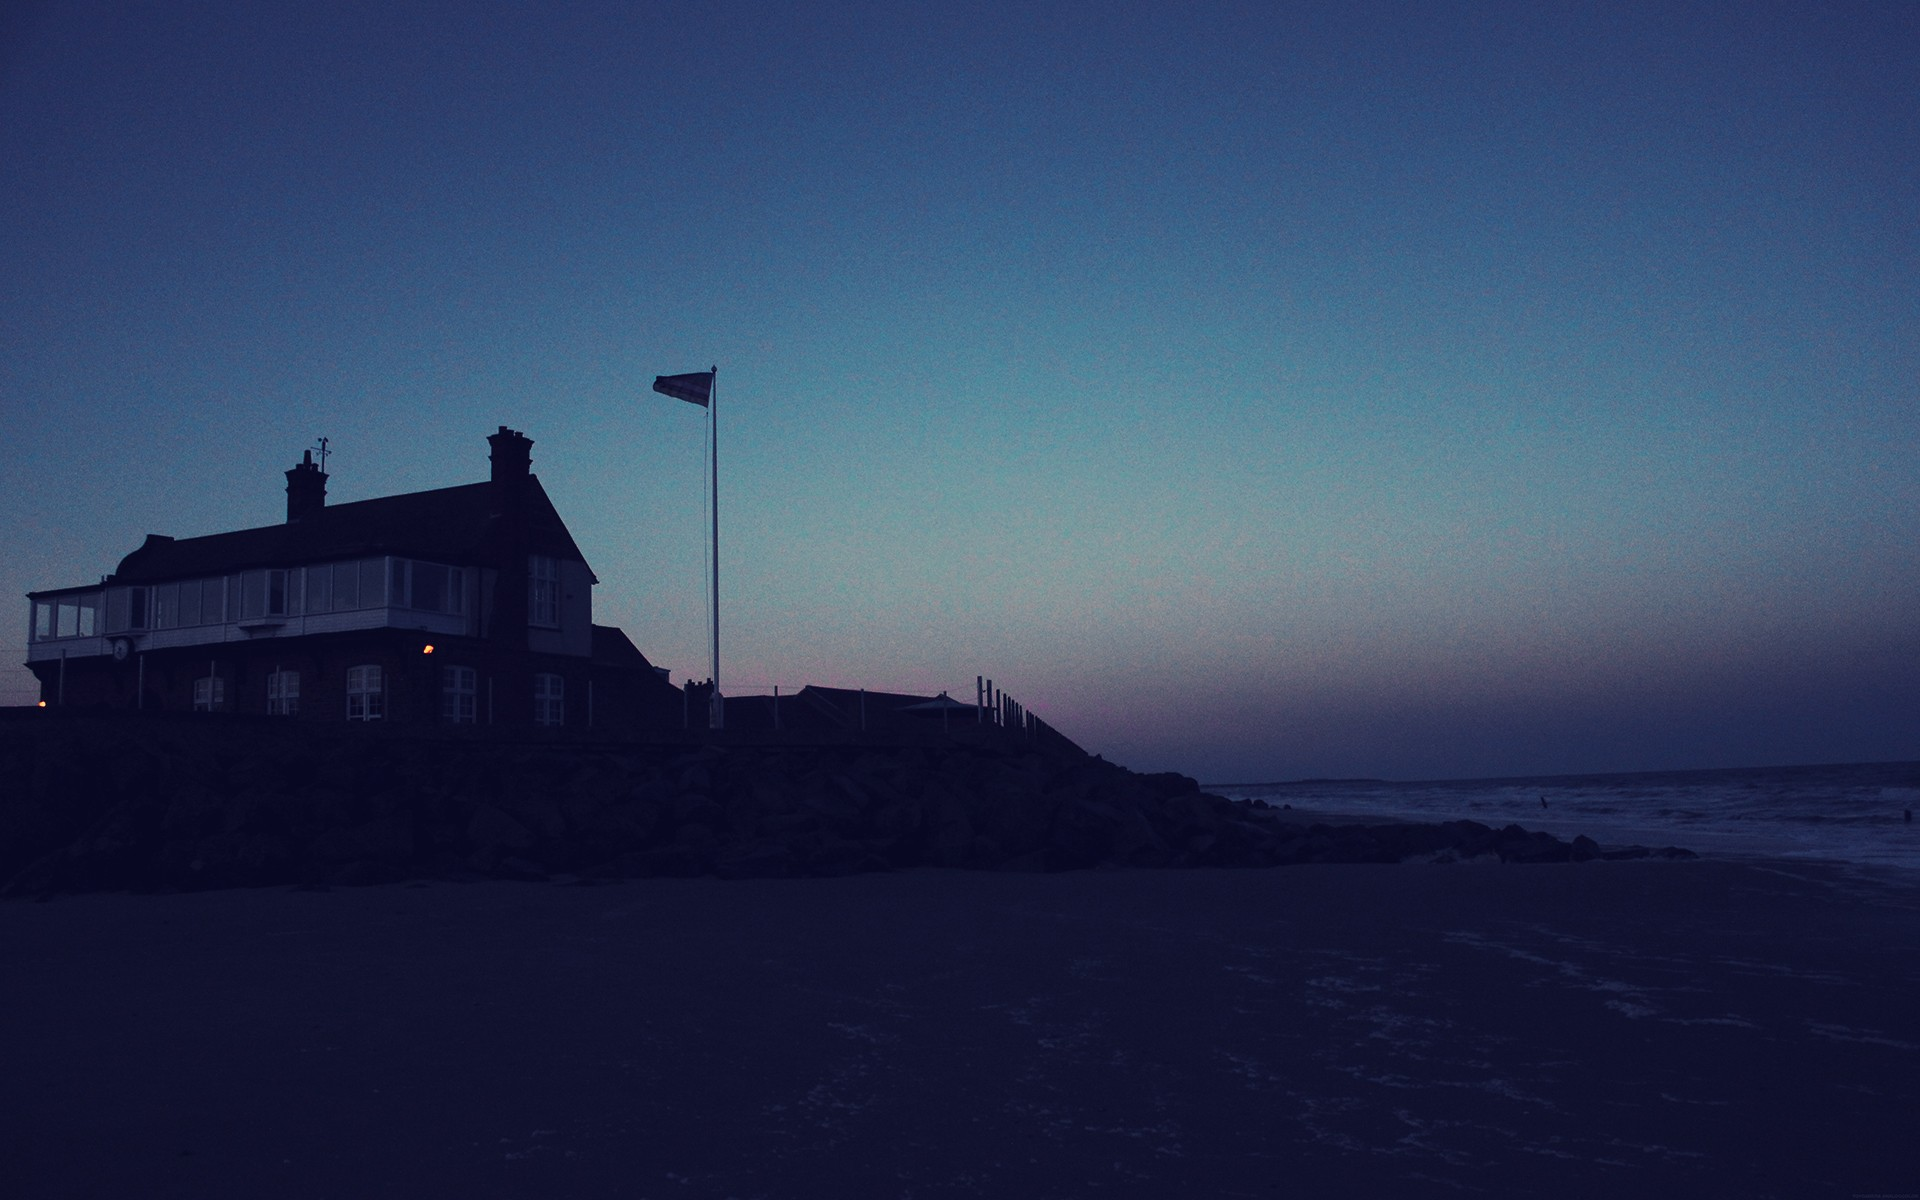 beach house at night wallpapers | beach house at night stock photos